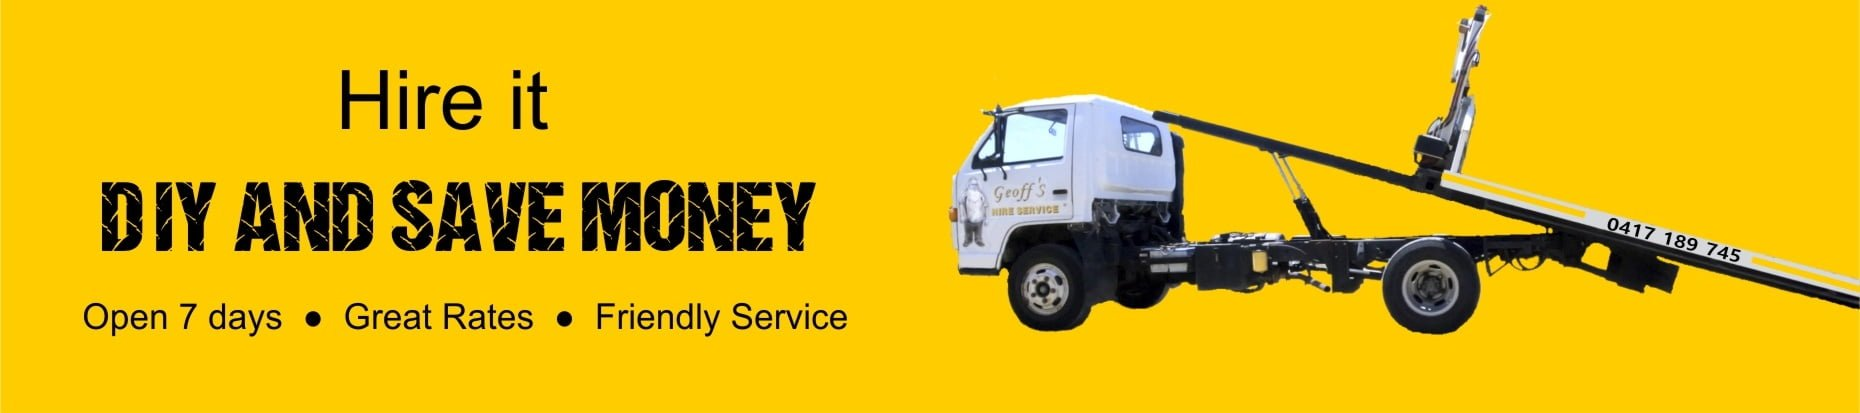 home banner - trayback truck hire it, DIY and save money